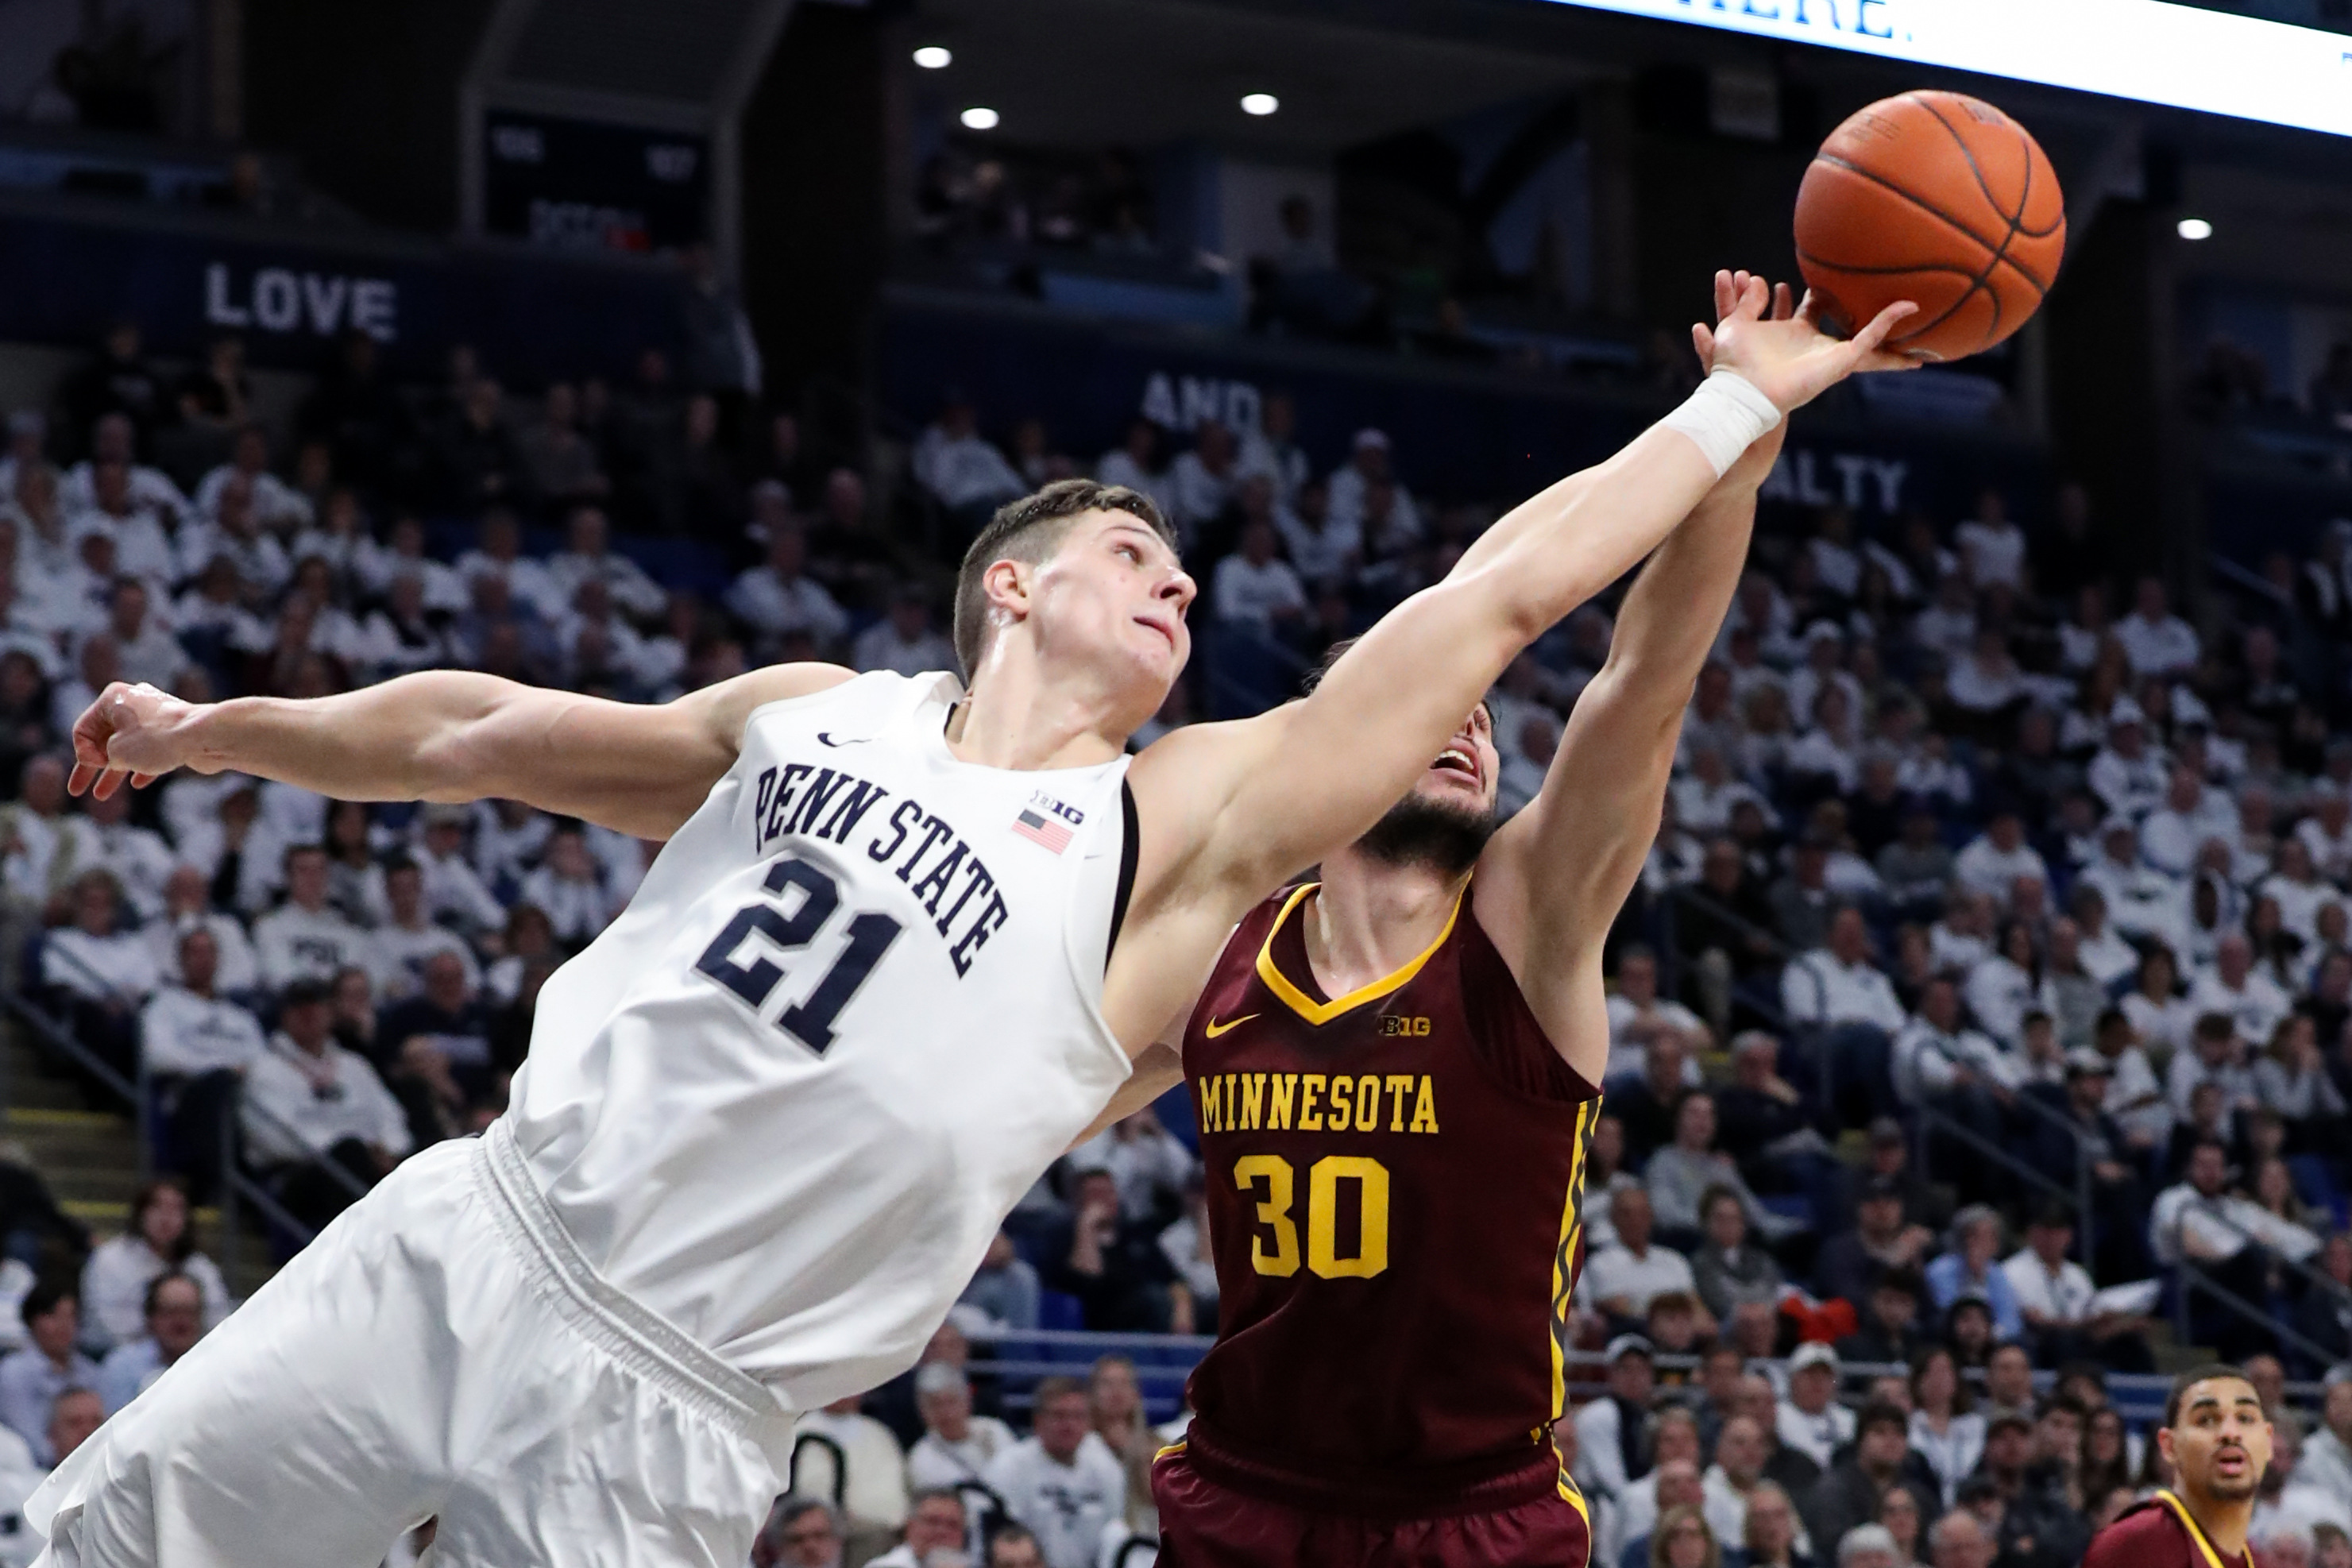 NCAA Basketball: Minnesota at Penn State